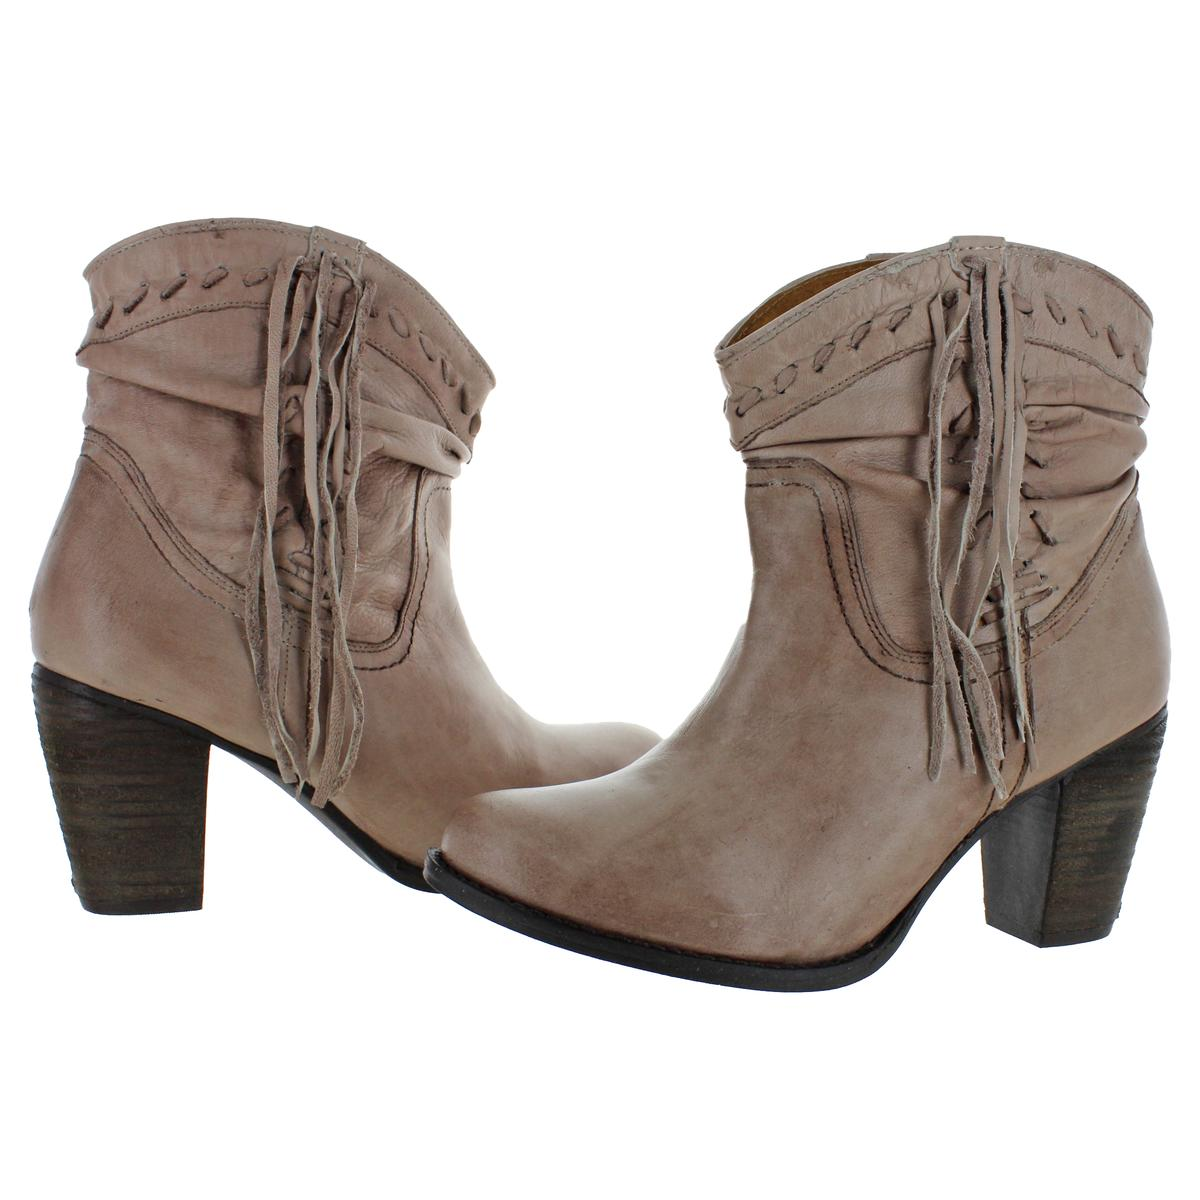 Naughty-Monkey-Womens-Noe-Leather-Block-Heel-Bootie-Ankle-Boots-Shoes-BHFO-9116 thumbnail 6